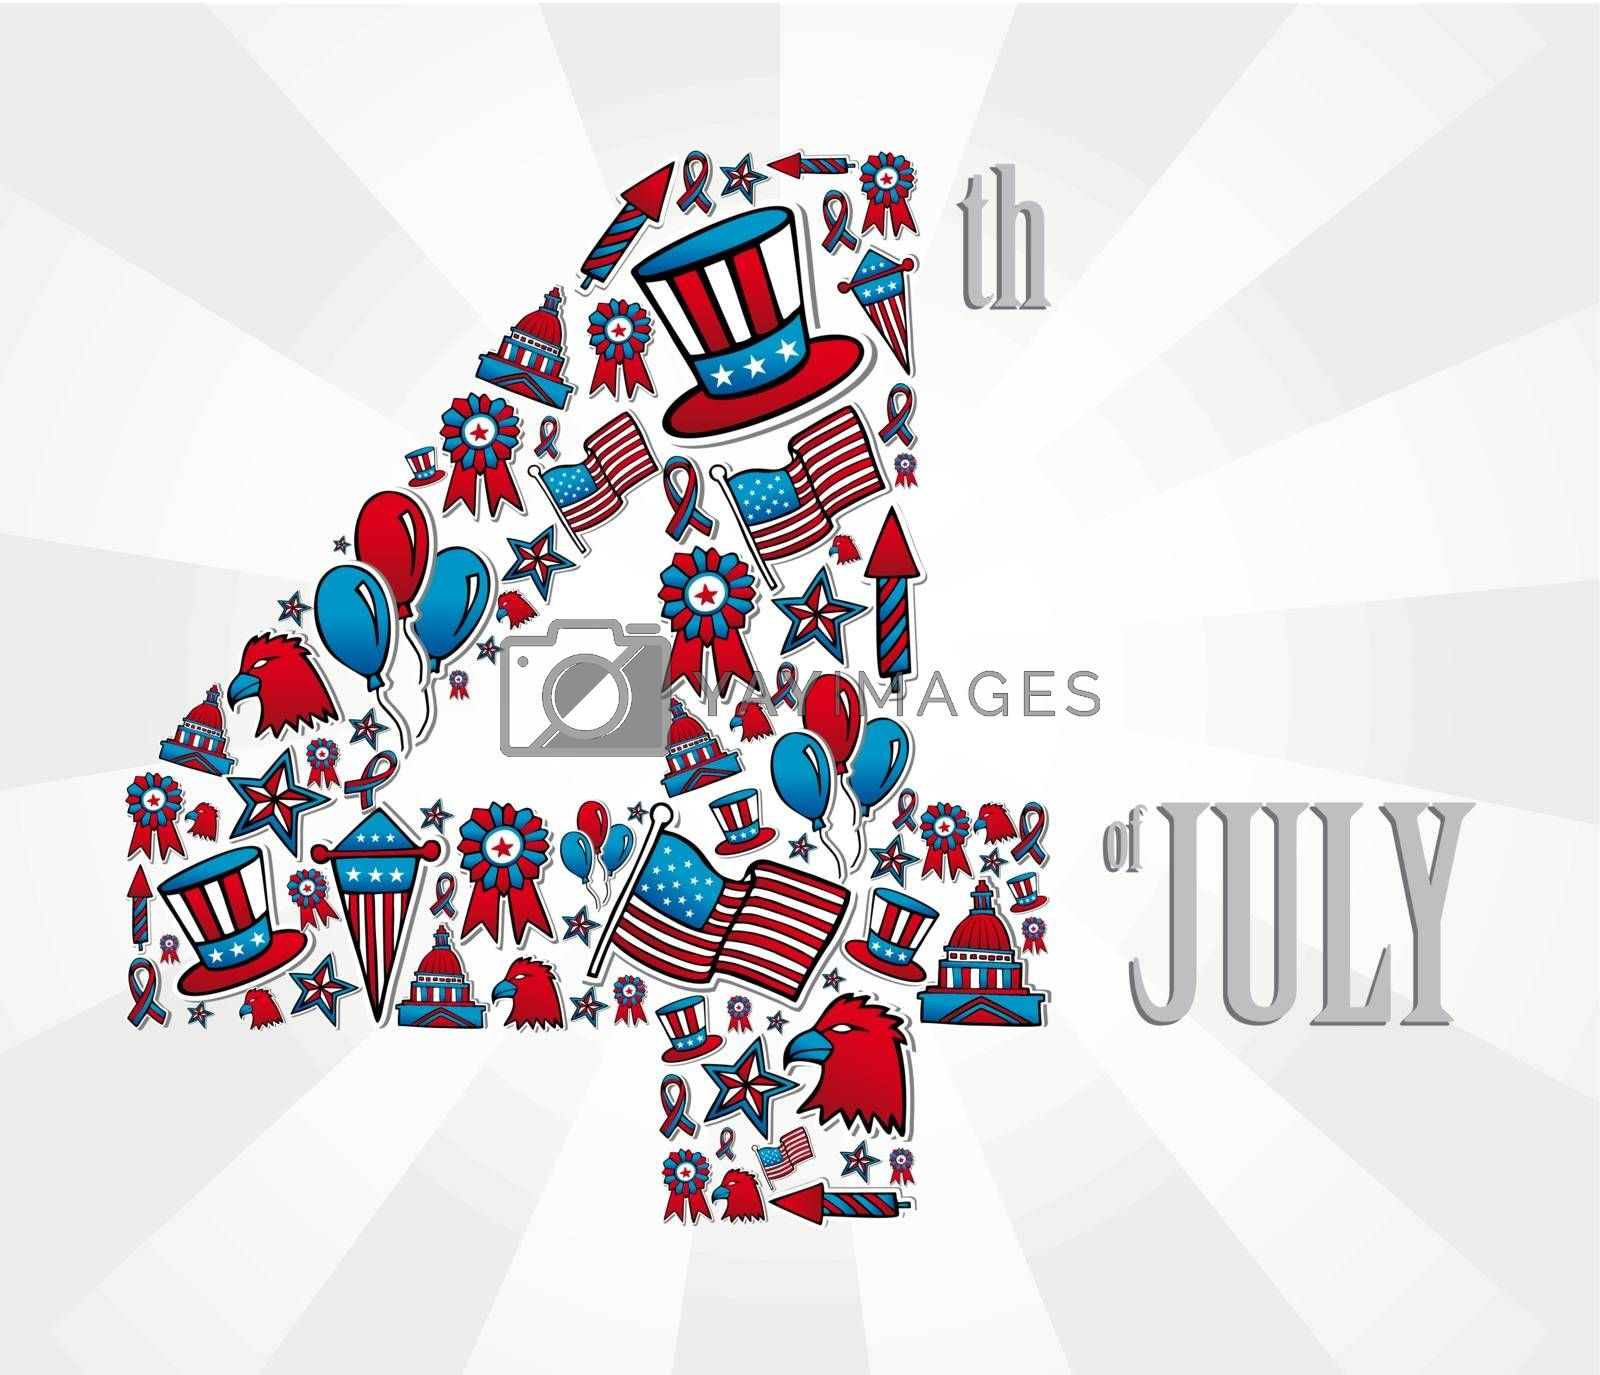 4th of july independence day illustration, white background. Vector file layered for easy manipulation and custom coloring.